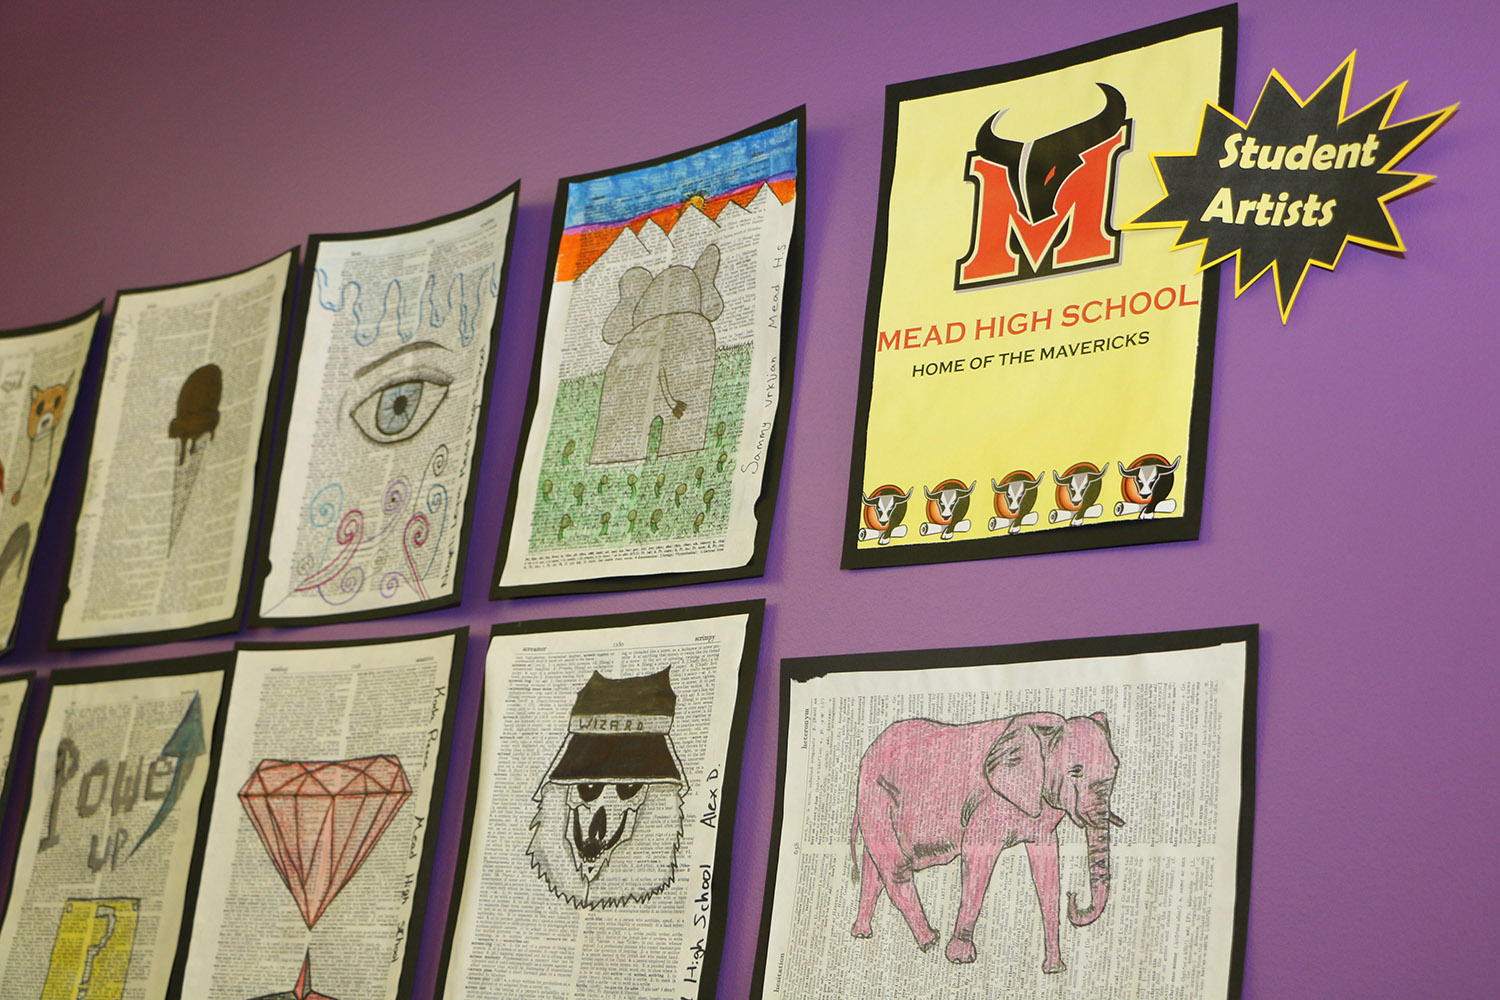 Mead High School Student Drawings